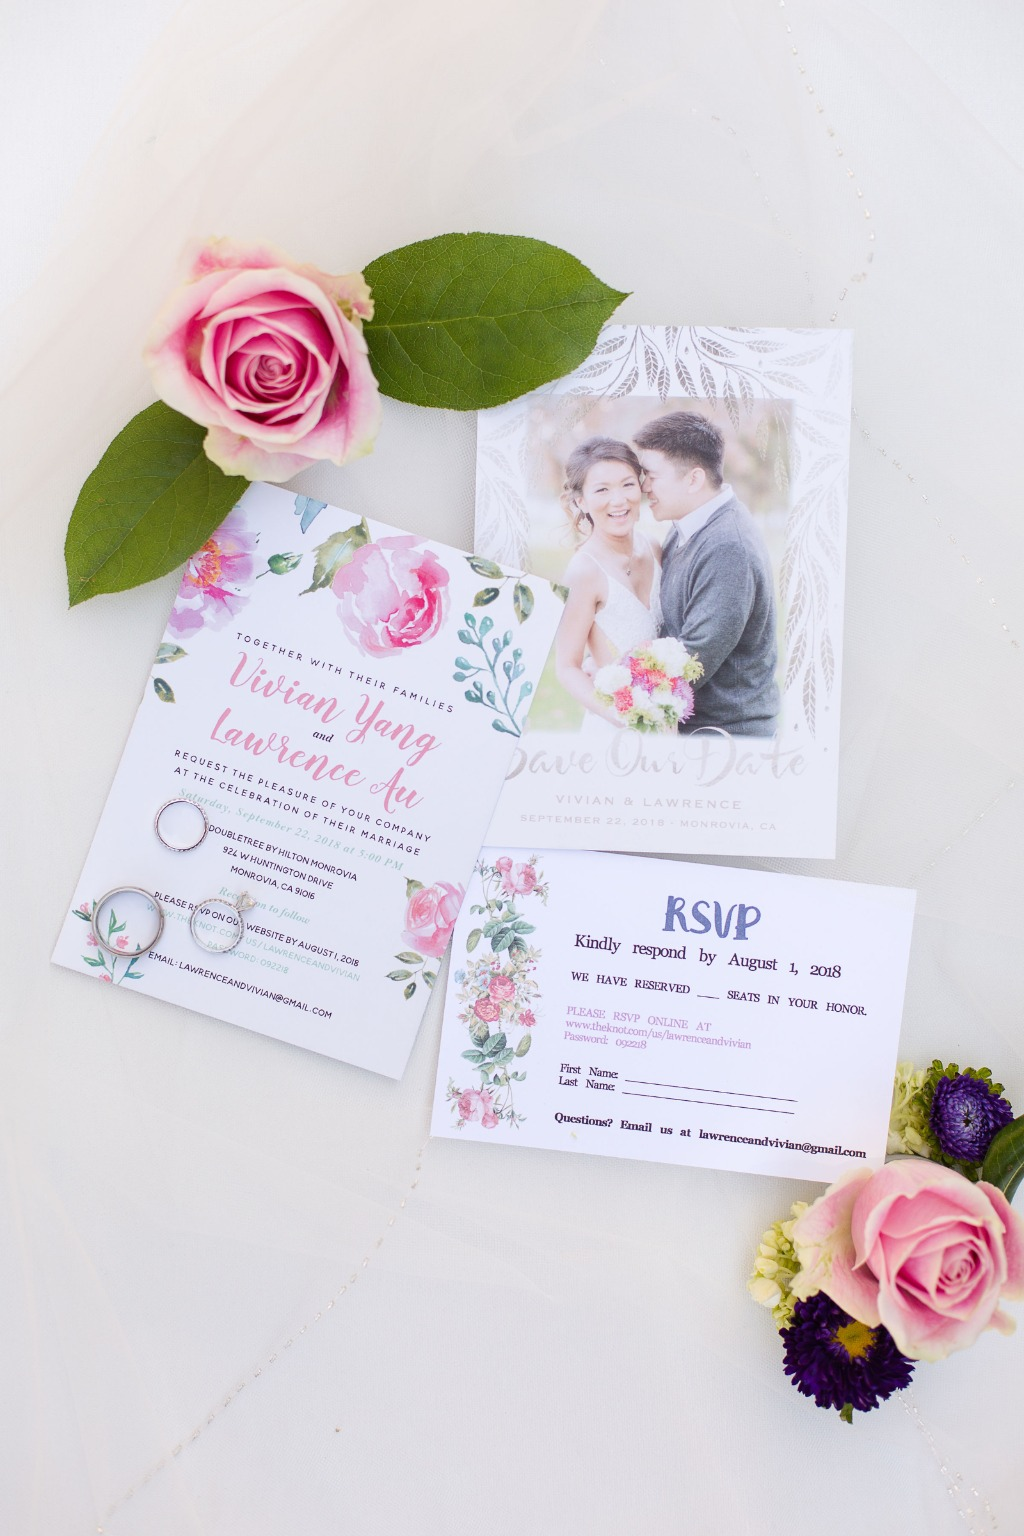 Wedding tip: Having extra prints of your invitations and save the dates makes for beautiful photographs that you can look back on.